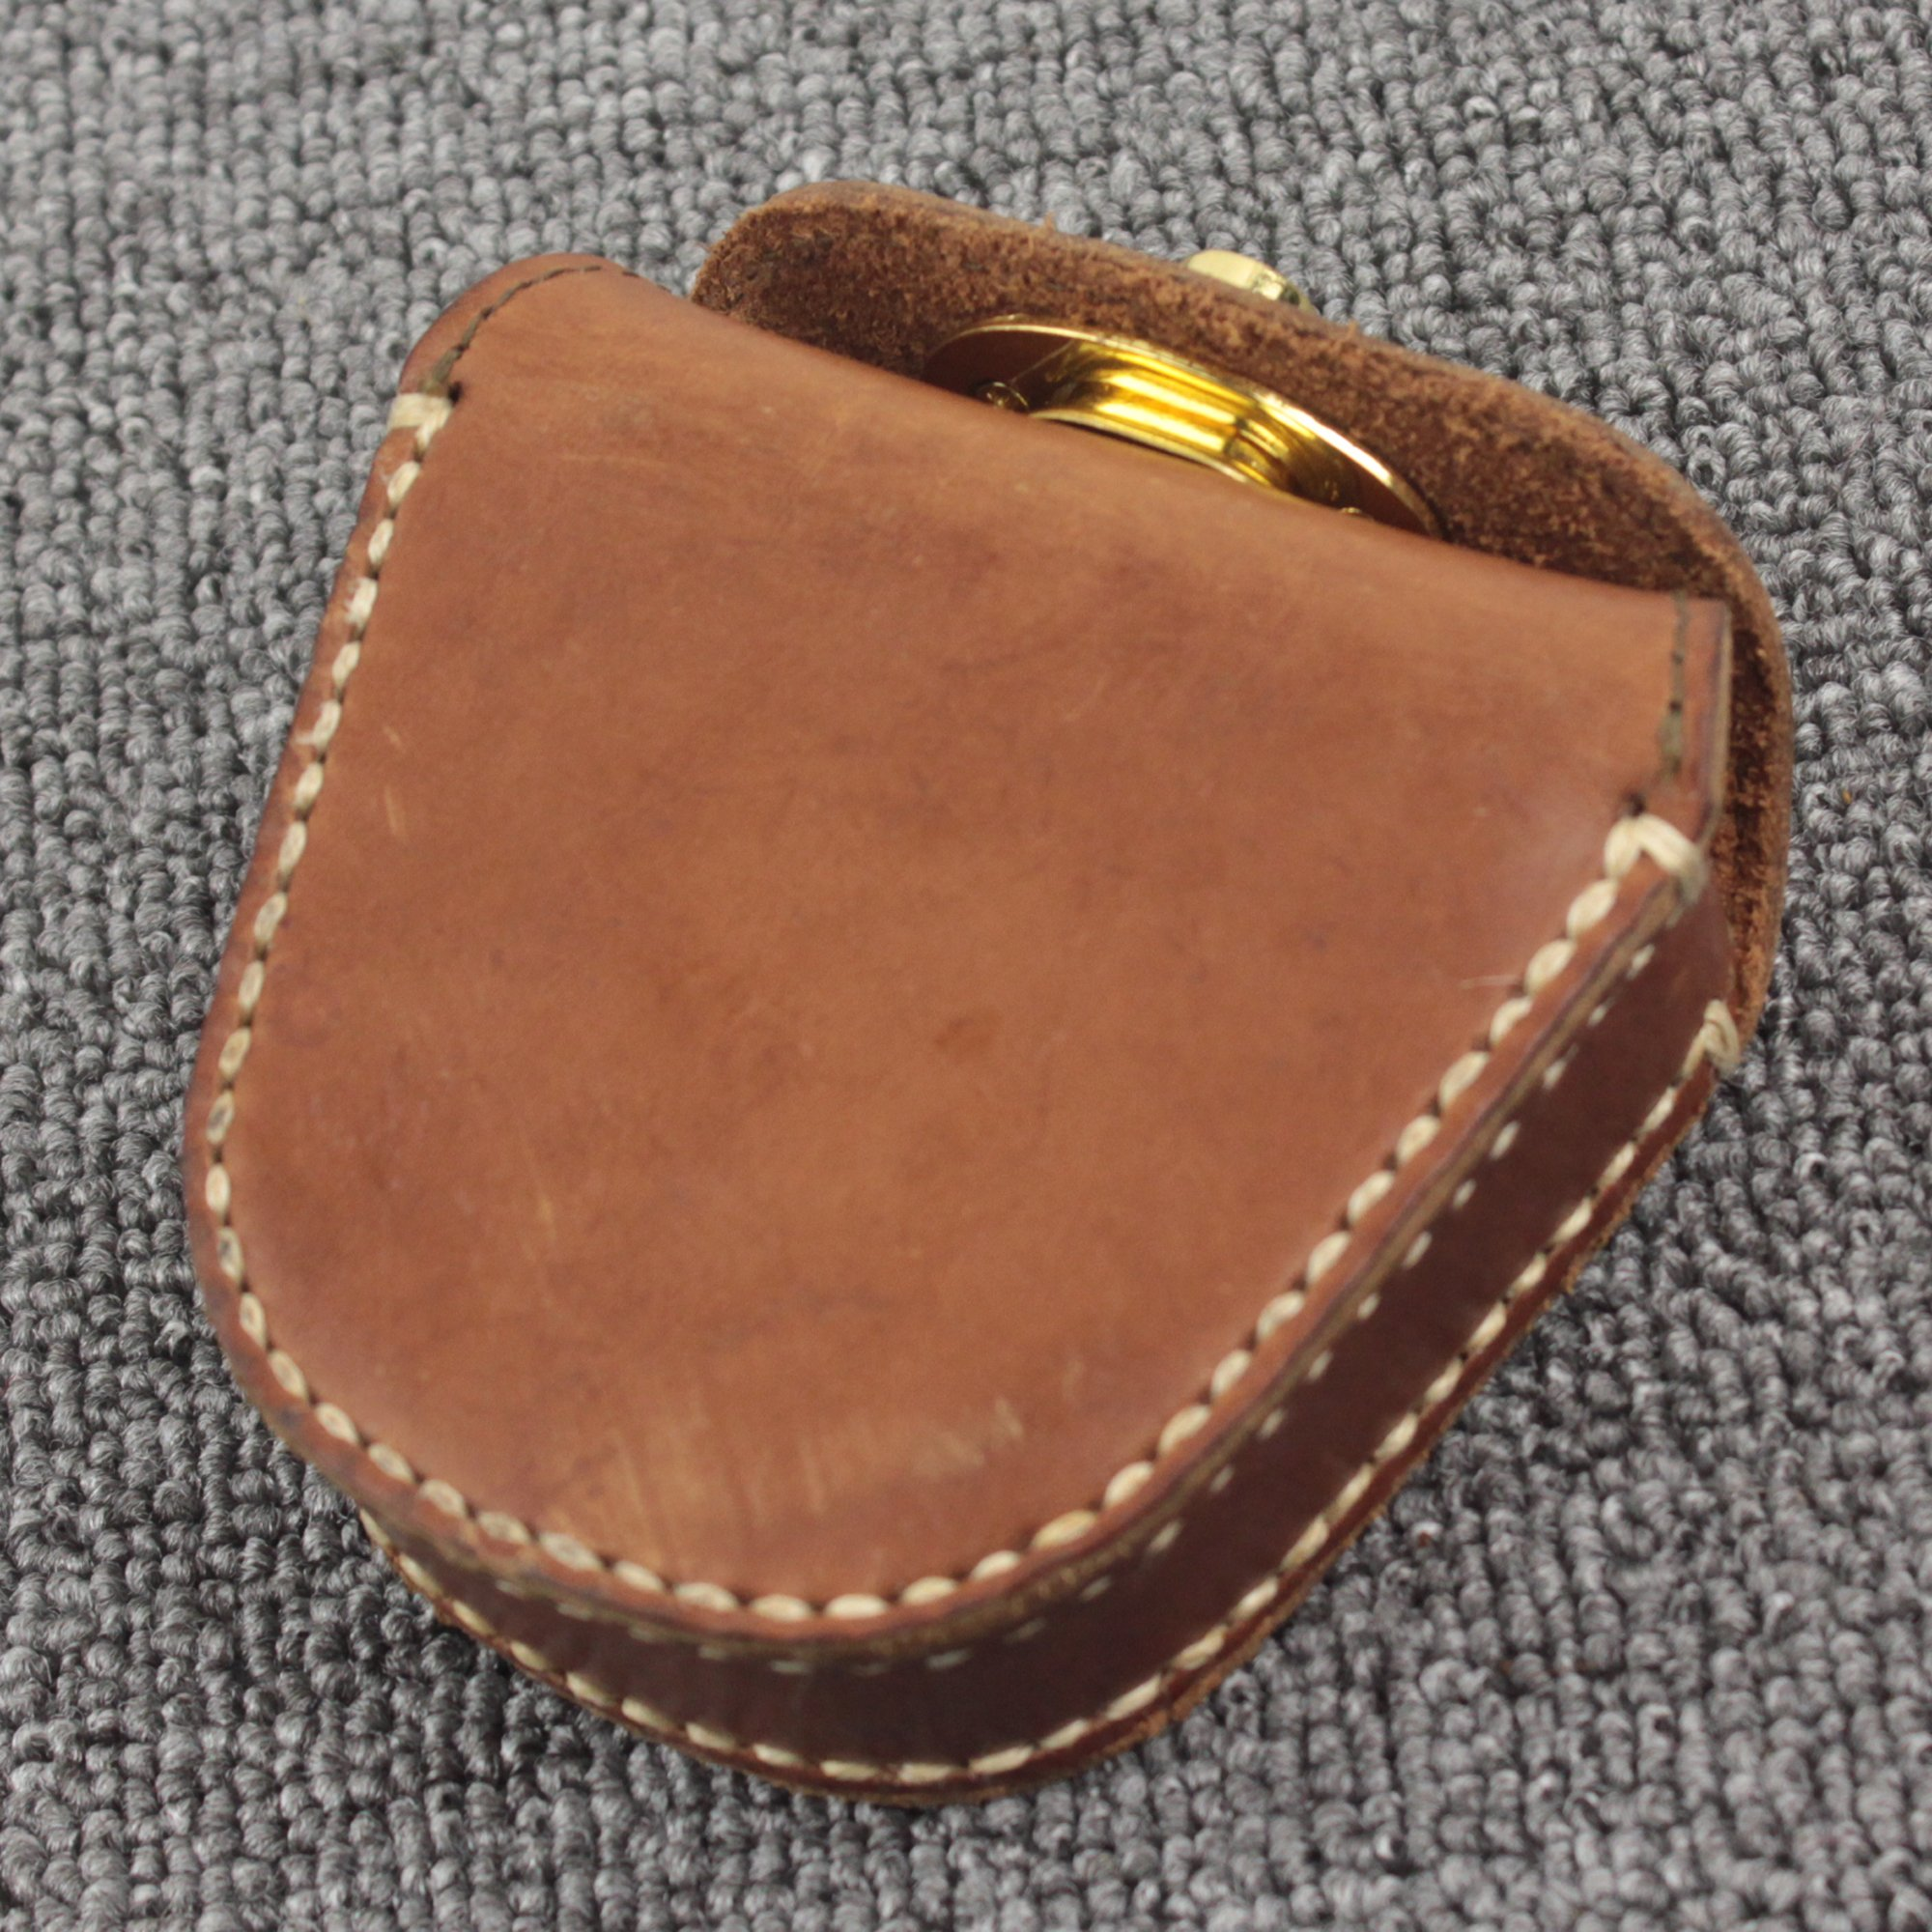 Thick Geninue Leather Handmade Pellets Ammo Storage Bag Pouch hunting outdoor by Unknown (Image #2)